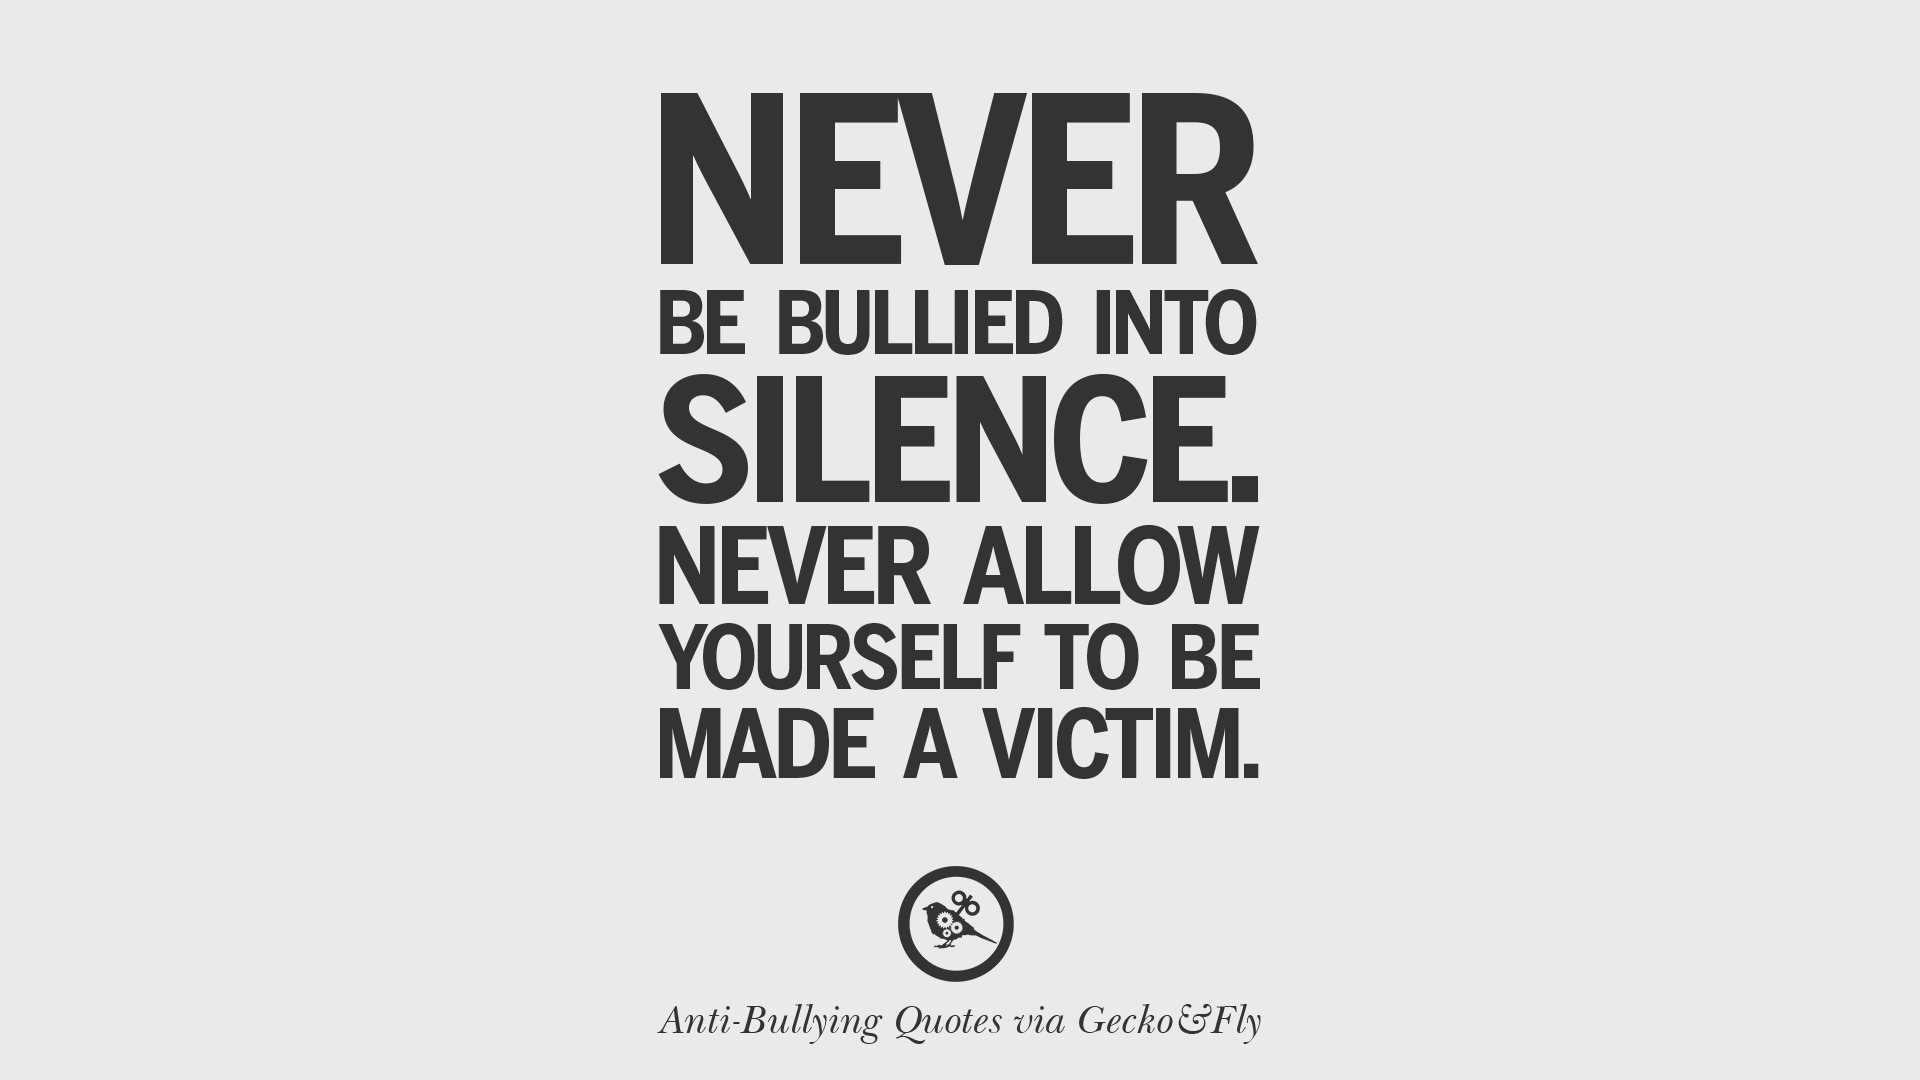 Victim Quotes 12 Quotes On Anti Cyber Bulling And Social Bullying Effects